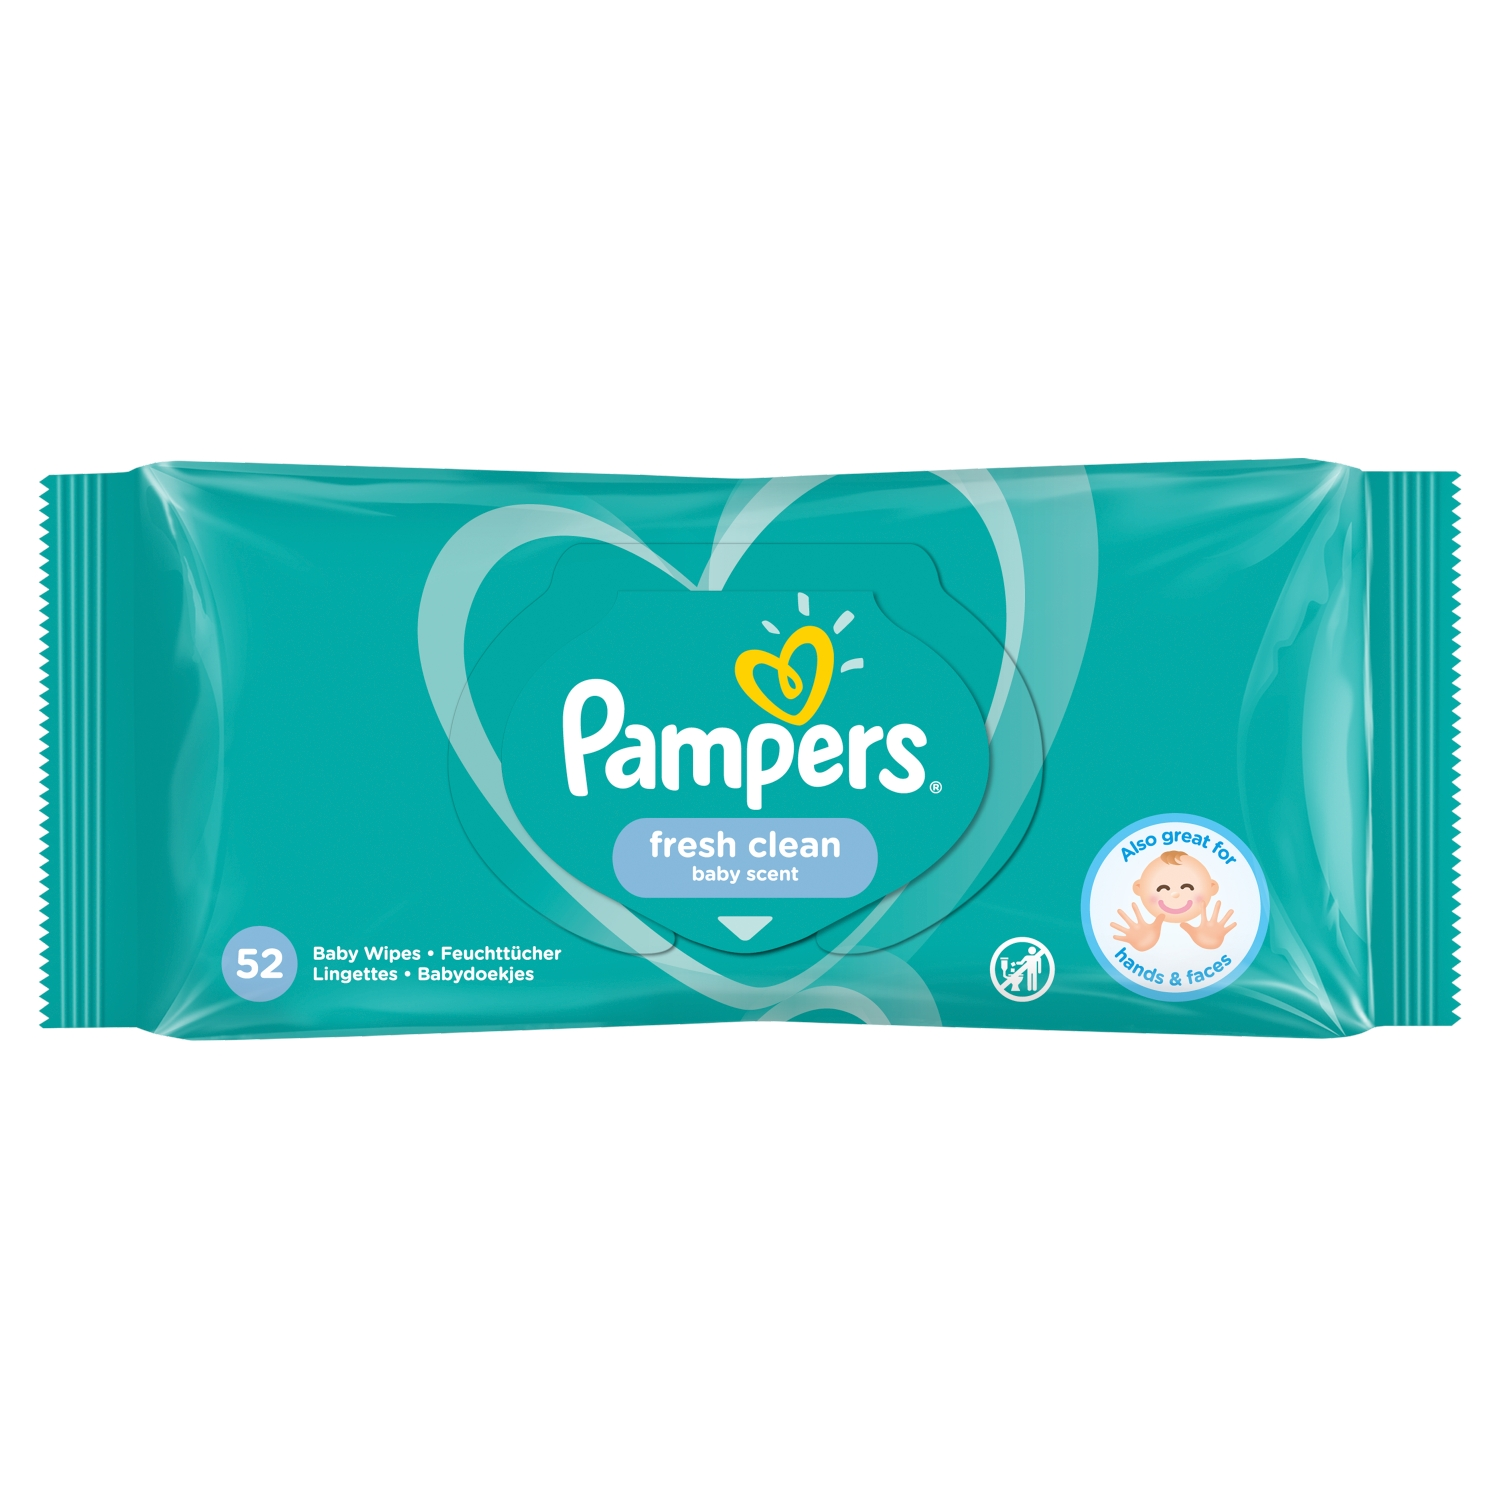 Pampers Fresh Clean Baby Wipes 1 Pack = 52 Baby Wet Wipes